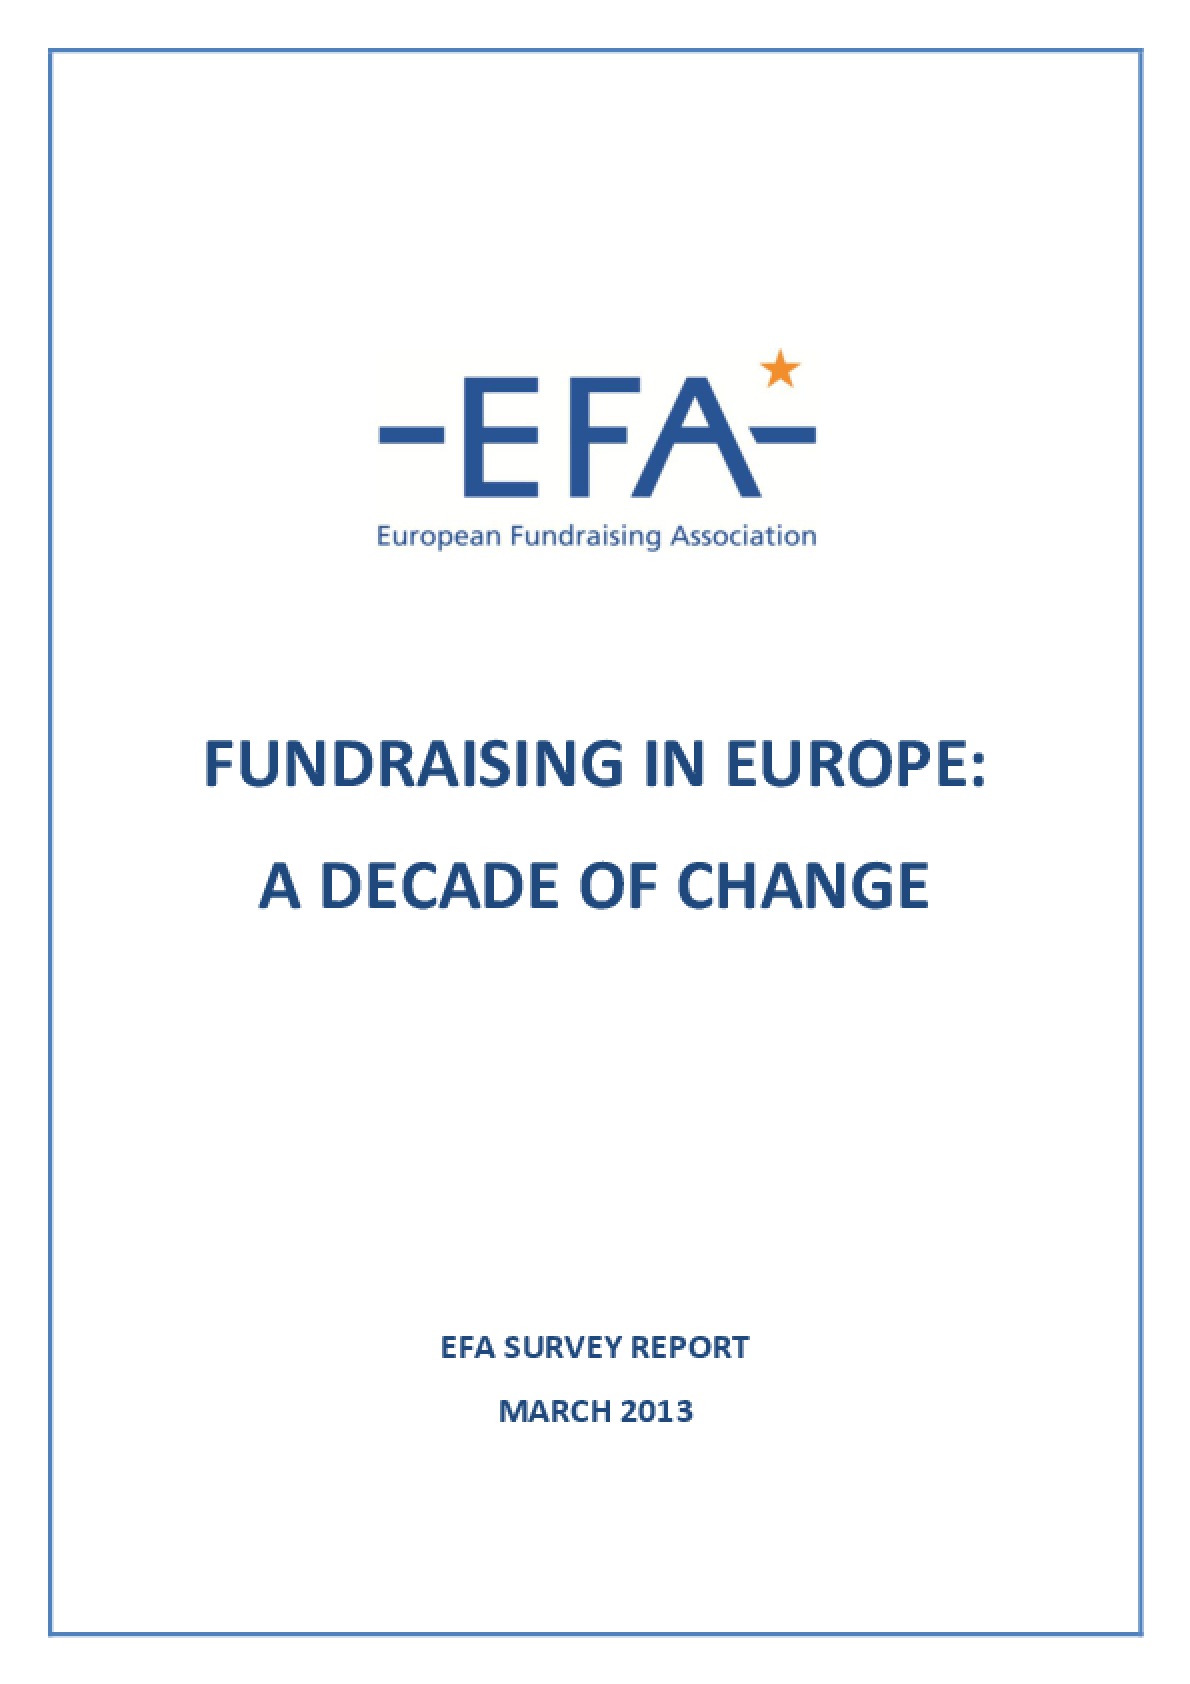 Fundraising in Europe: A Decade of Change